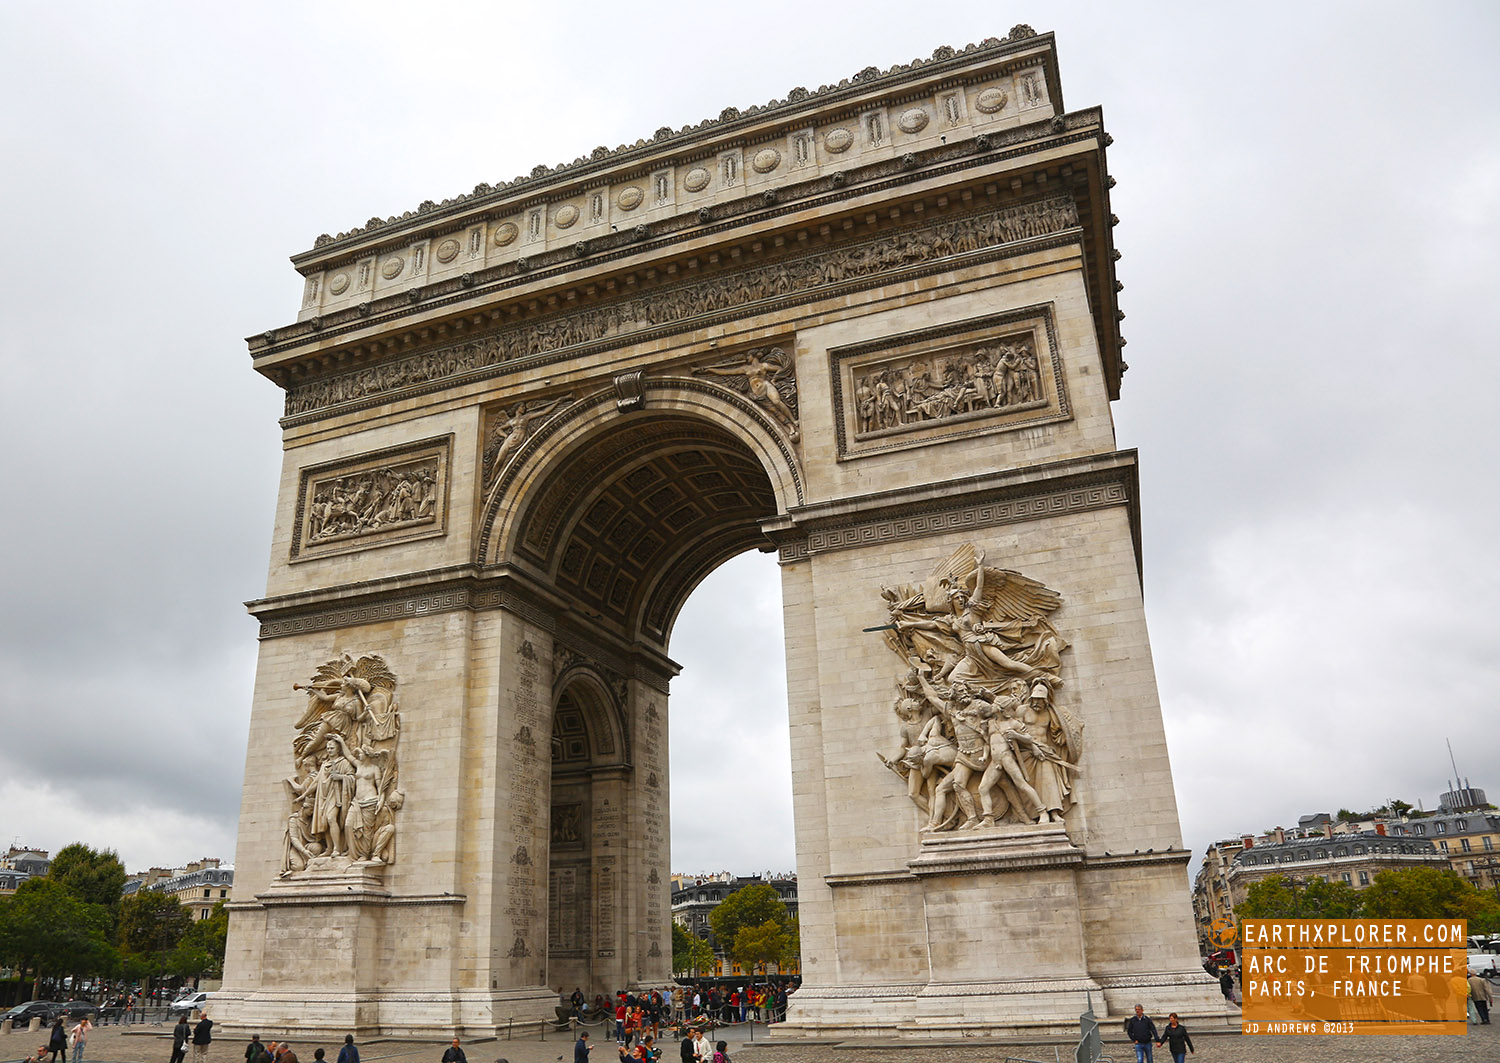 The Arc de Triomphe honors the people who fought and died for France in the French Revolutionary and the Napoleonic Wars.